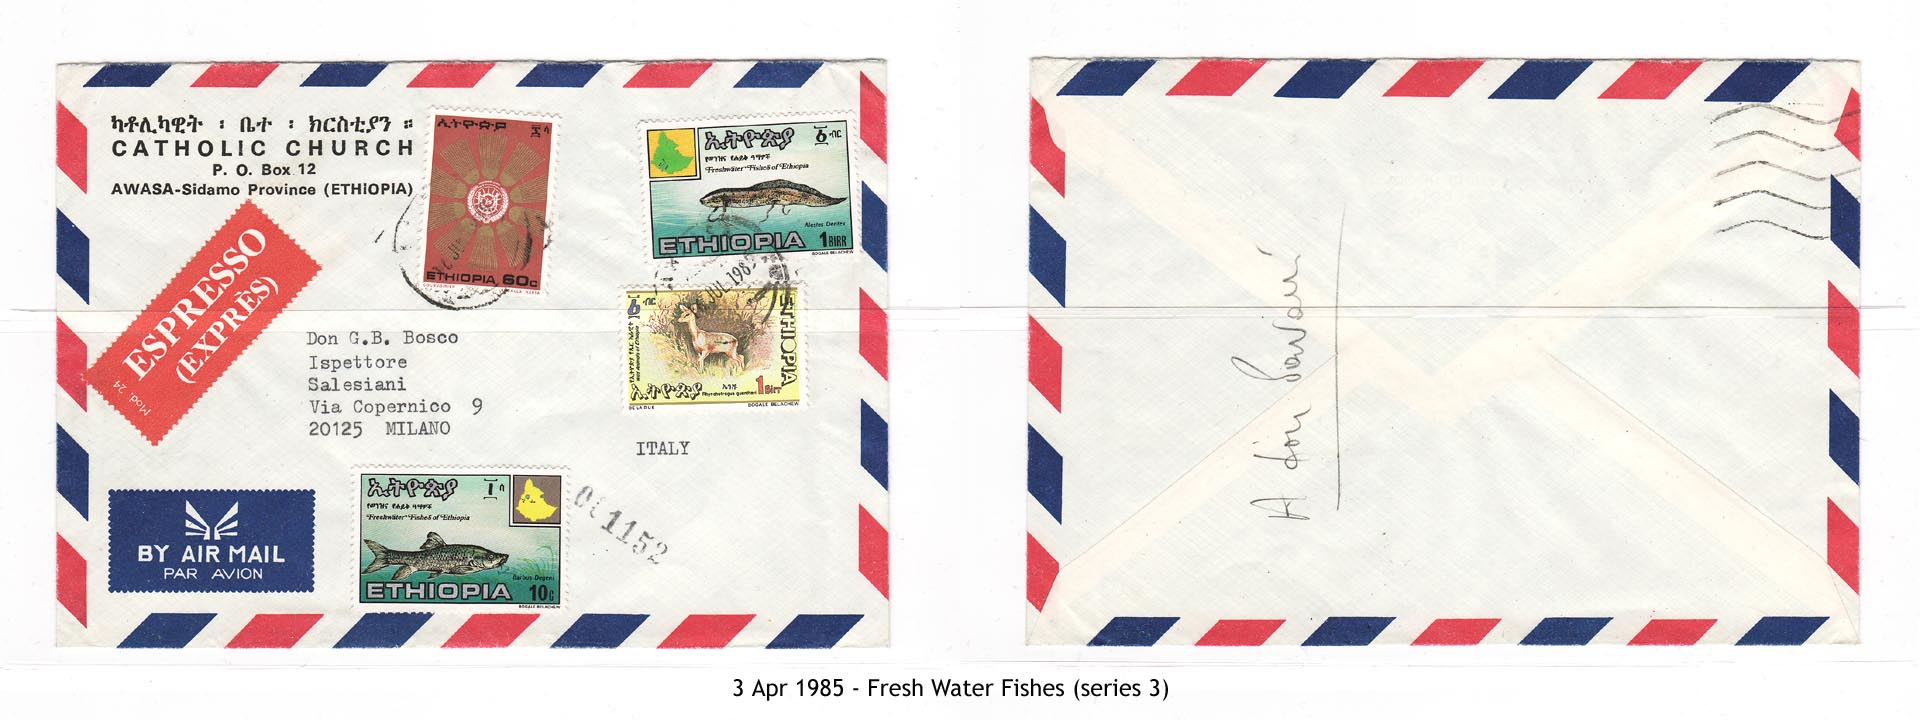 19850403 - Fresh Water Fishes of Ethiopia (series 3)